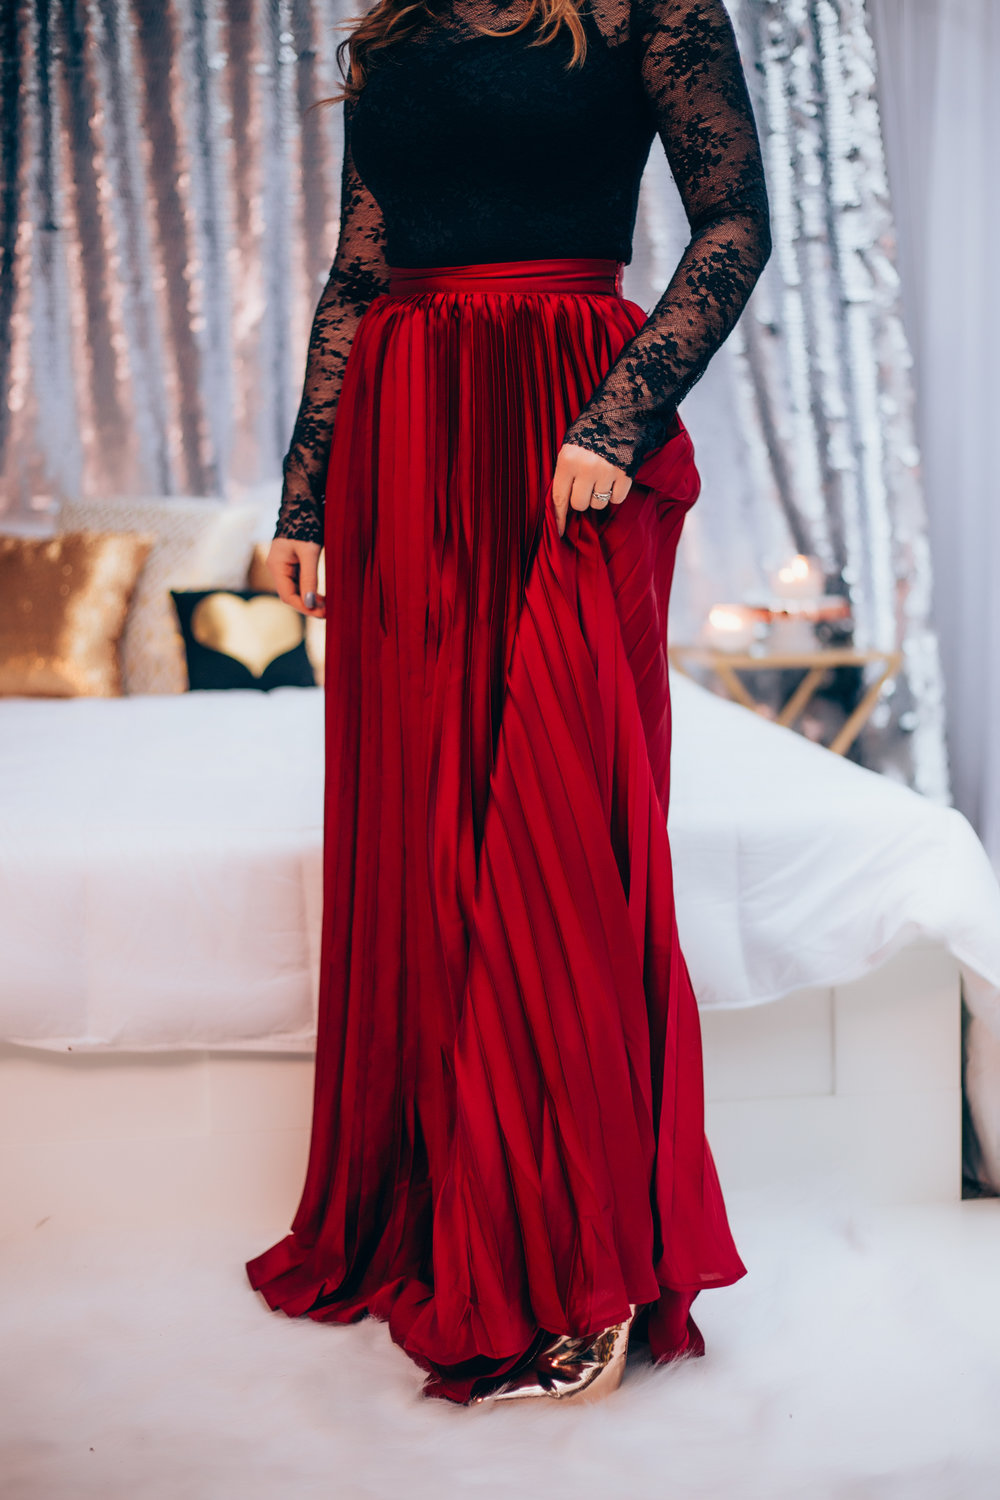 Black friday sale haul from shein holiday style fashion Christmas outfit ideas-15.jpg